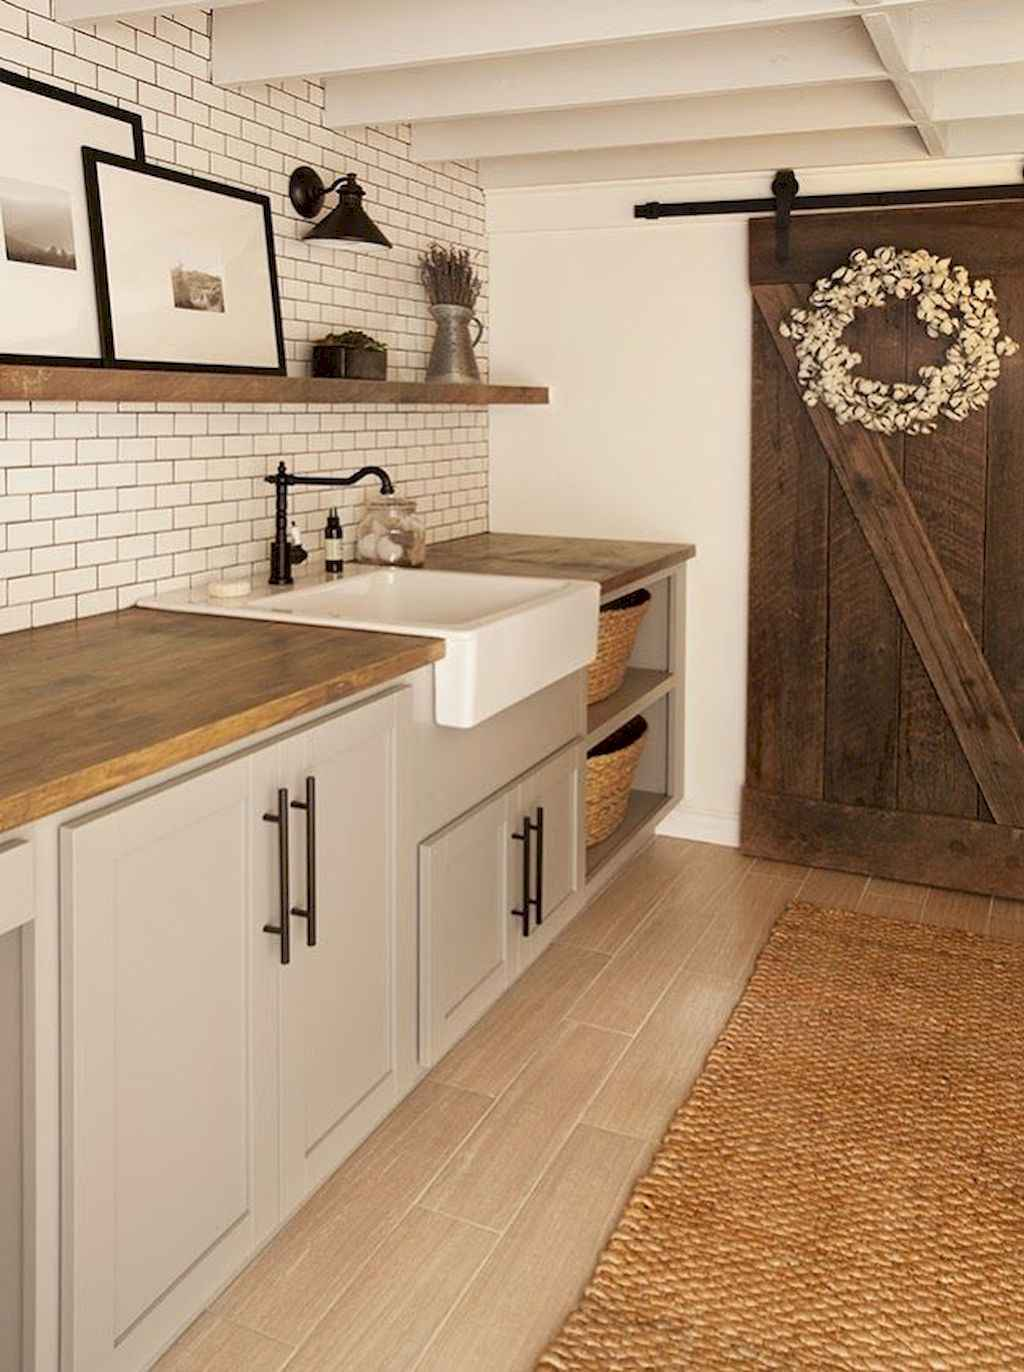 45 Rustic Farmhouse Laundry Room Design Ideas and Makeover (18)